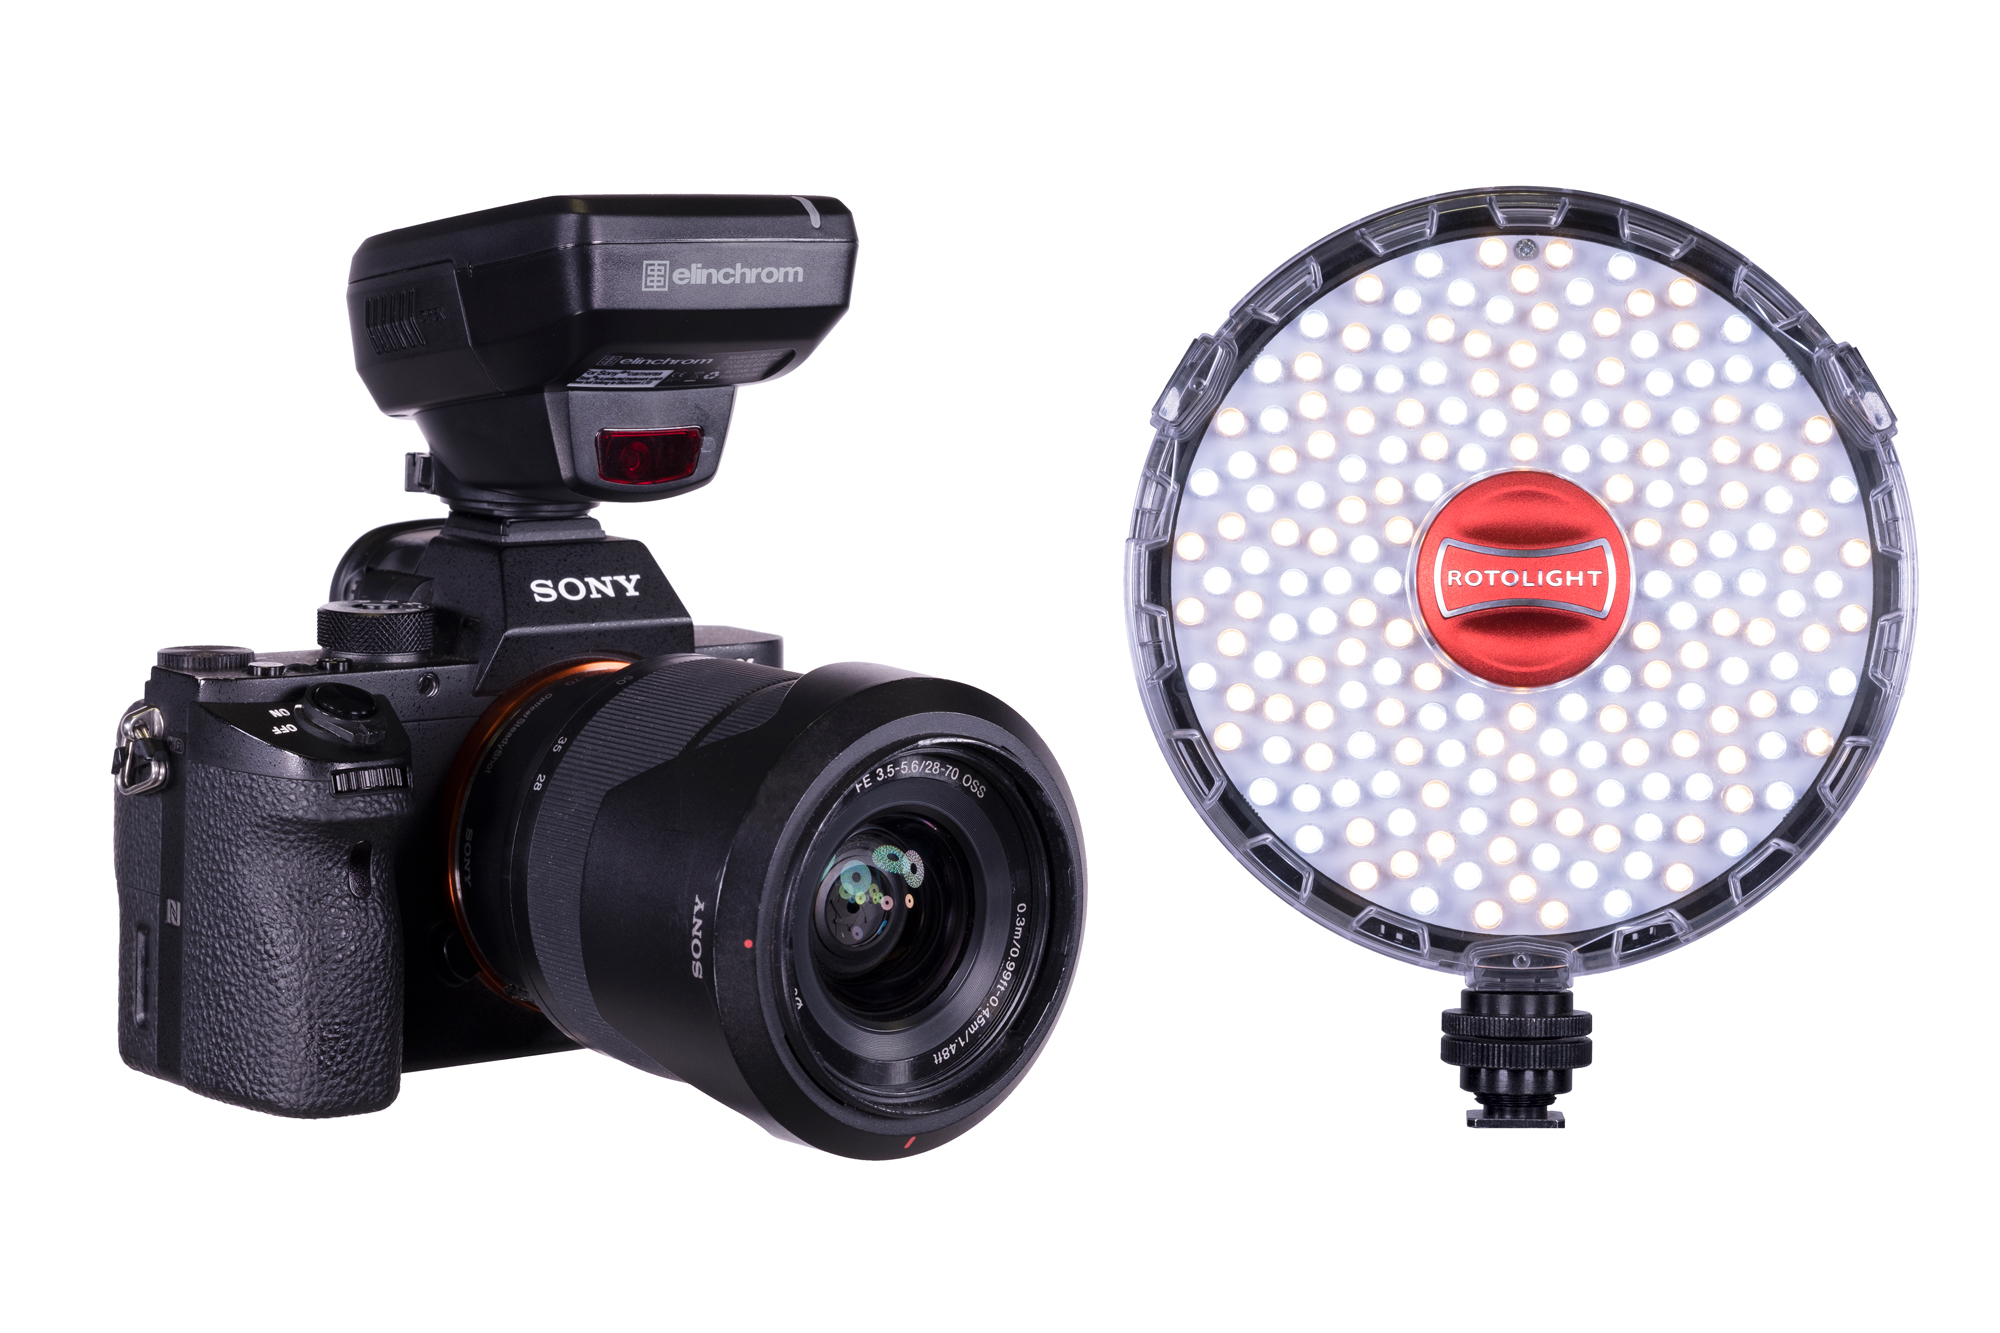 Rotolight announce the Neo 2 LED light